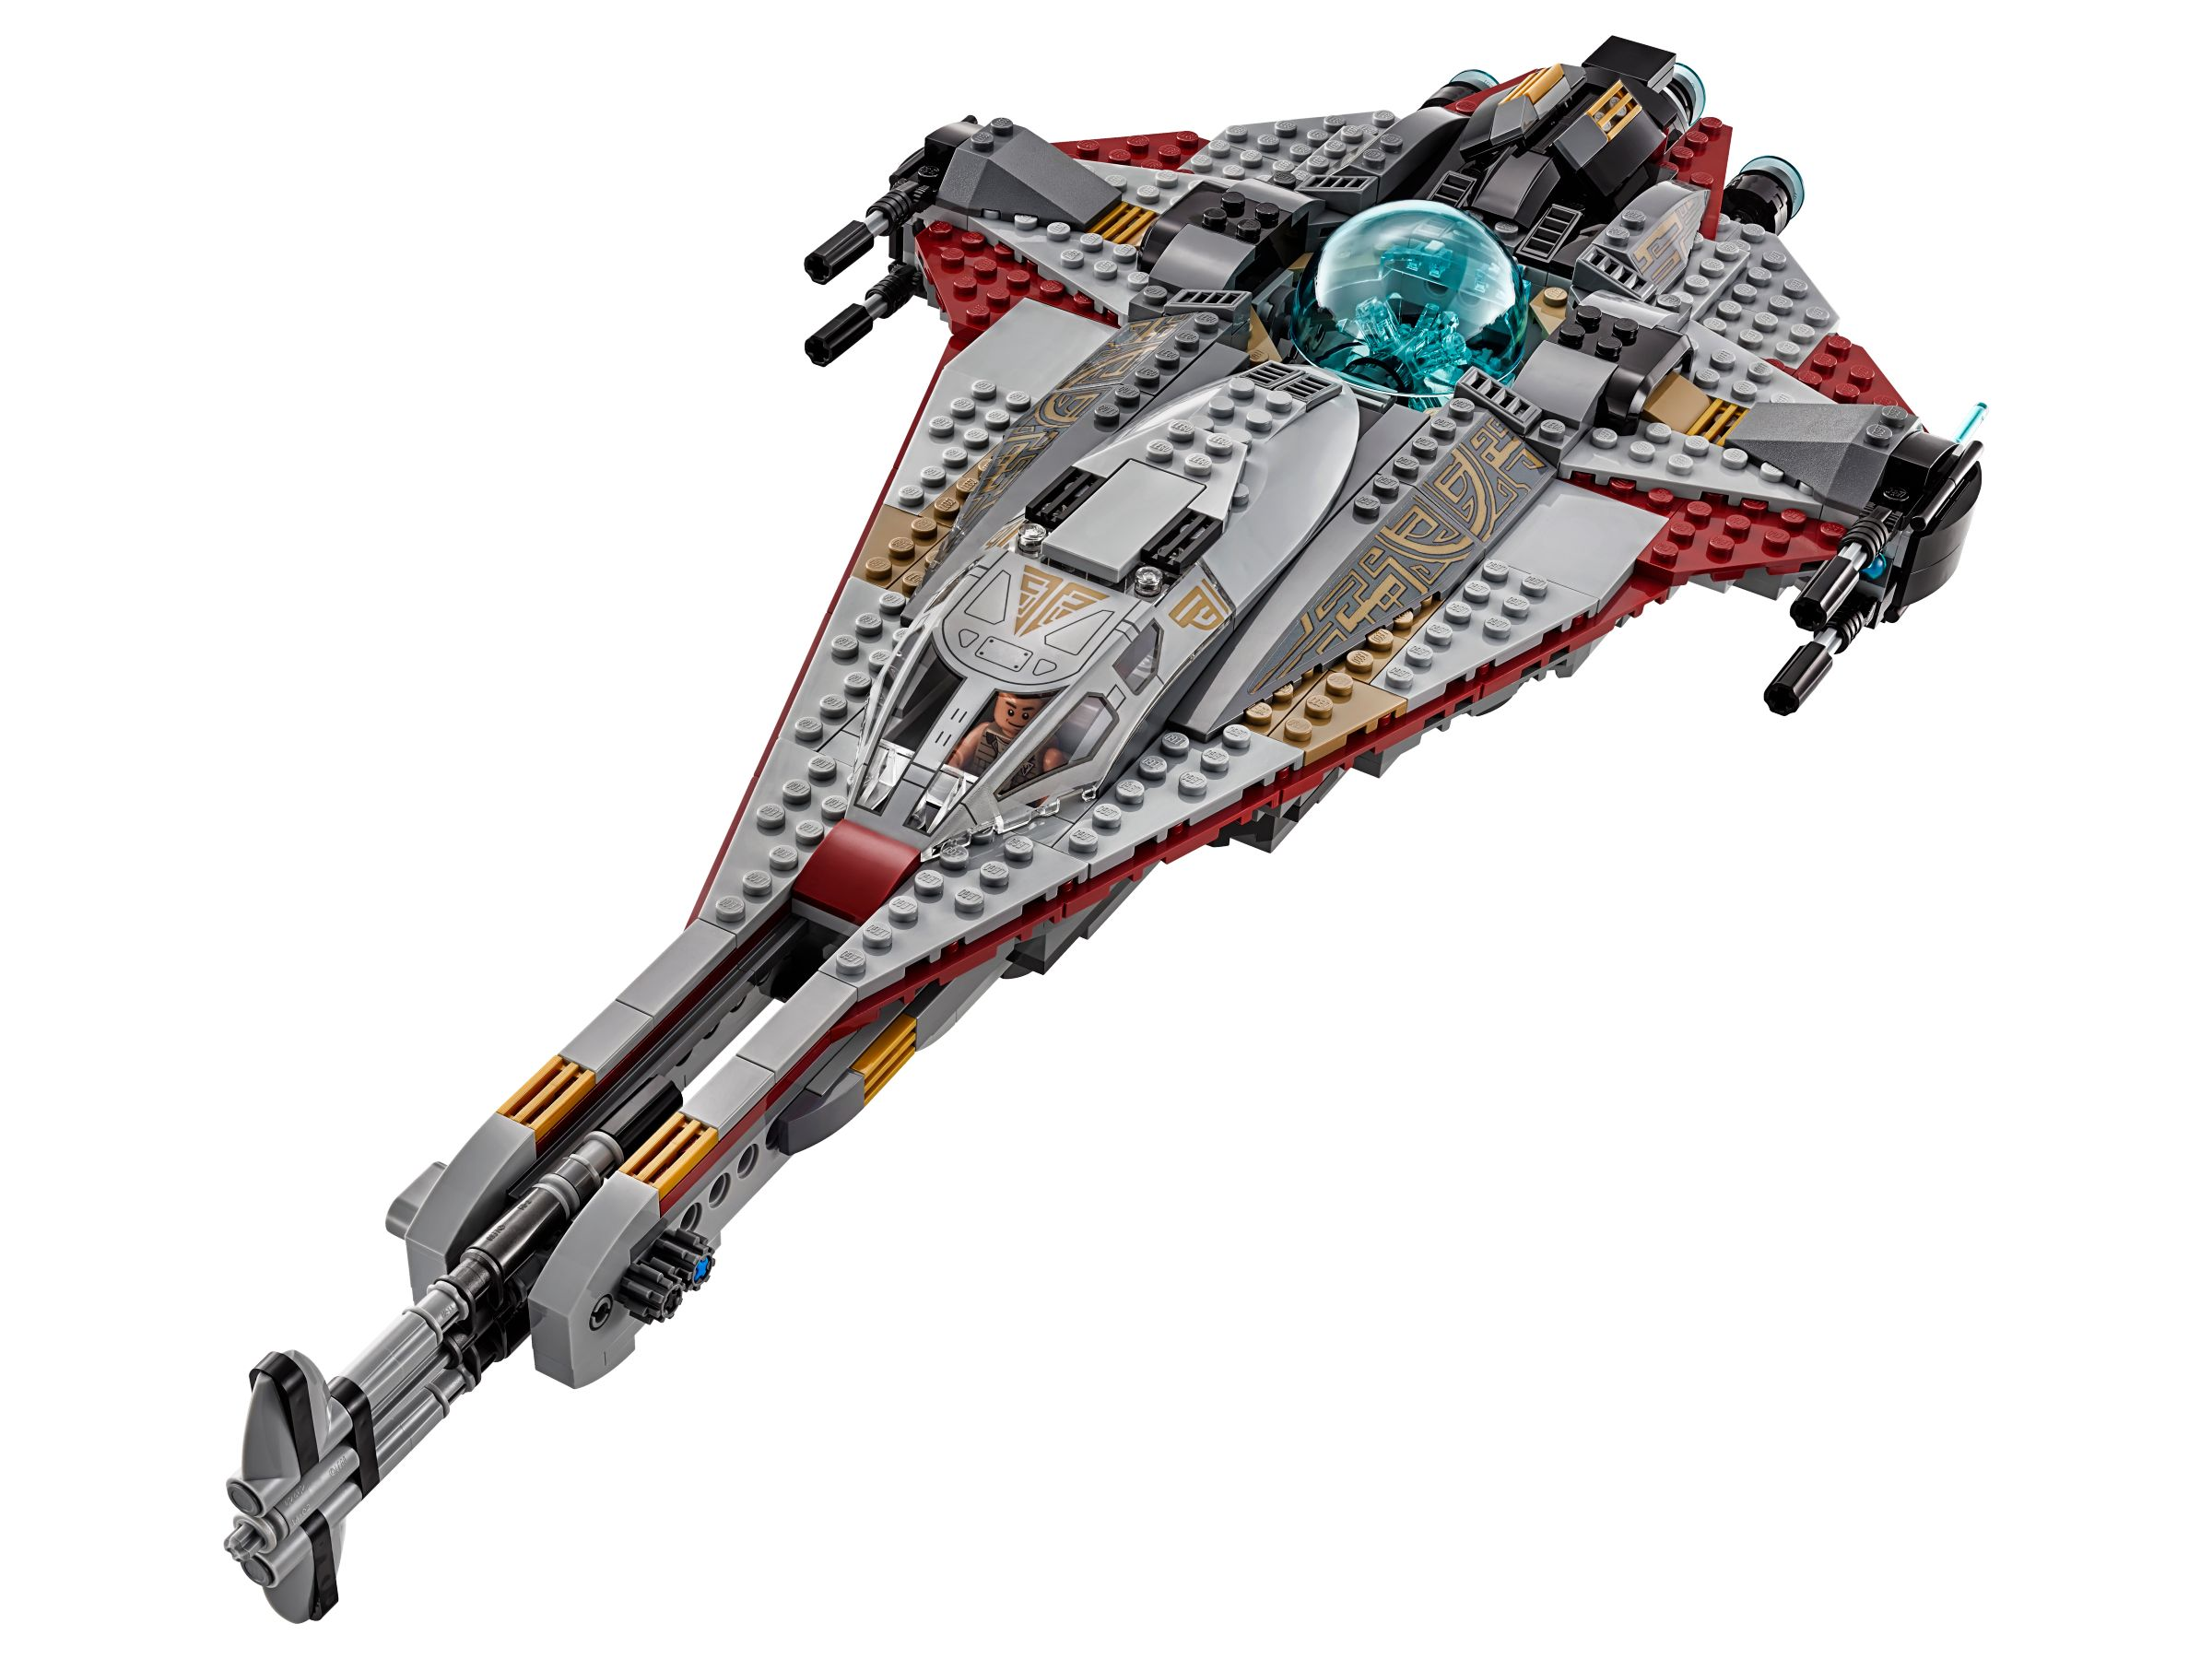 LEGO Star Wars 75186 The Arrowhead LEGO_75186_alt2.jpg